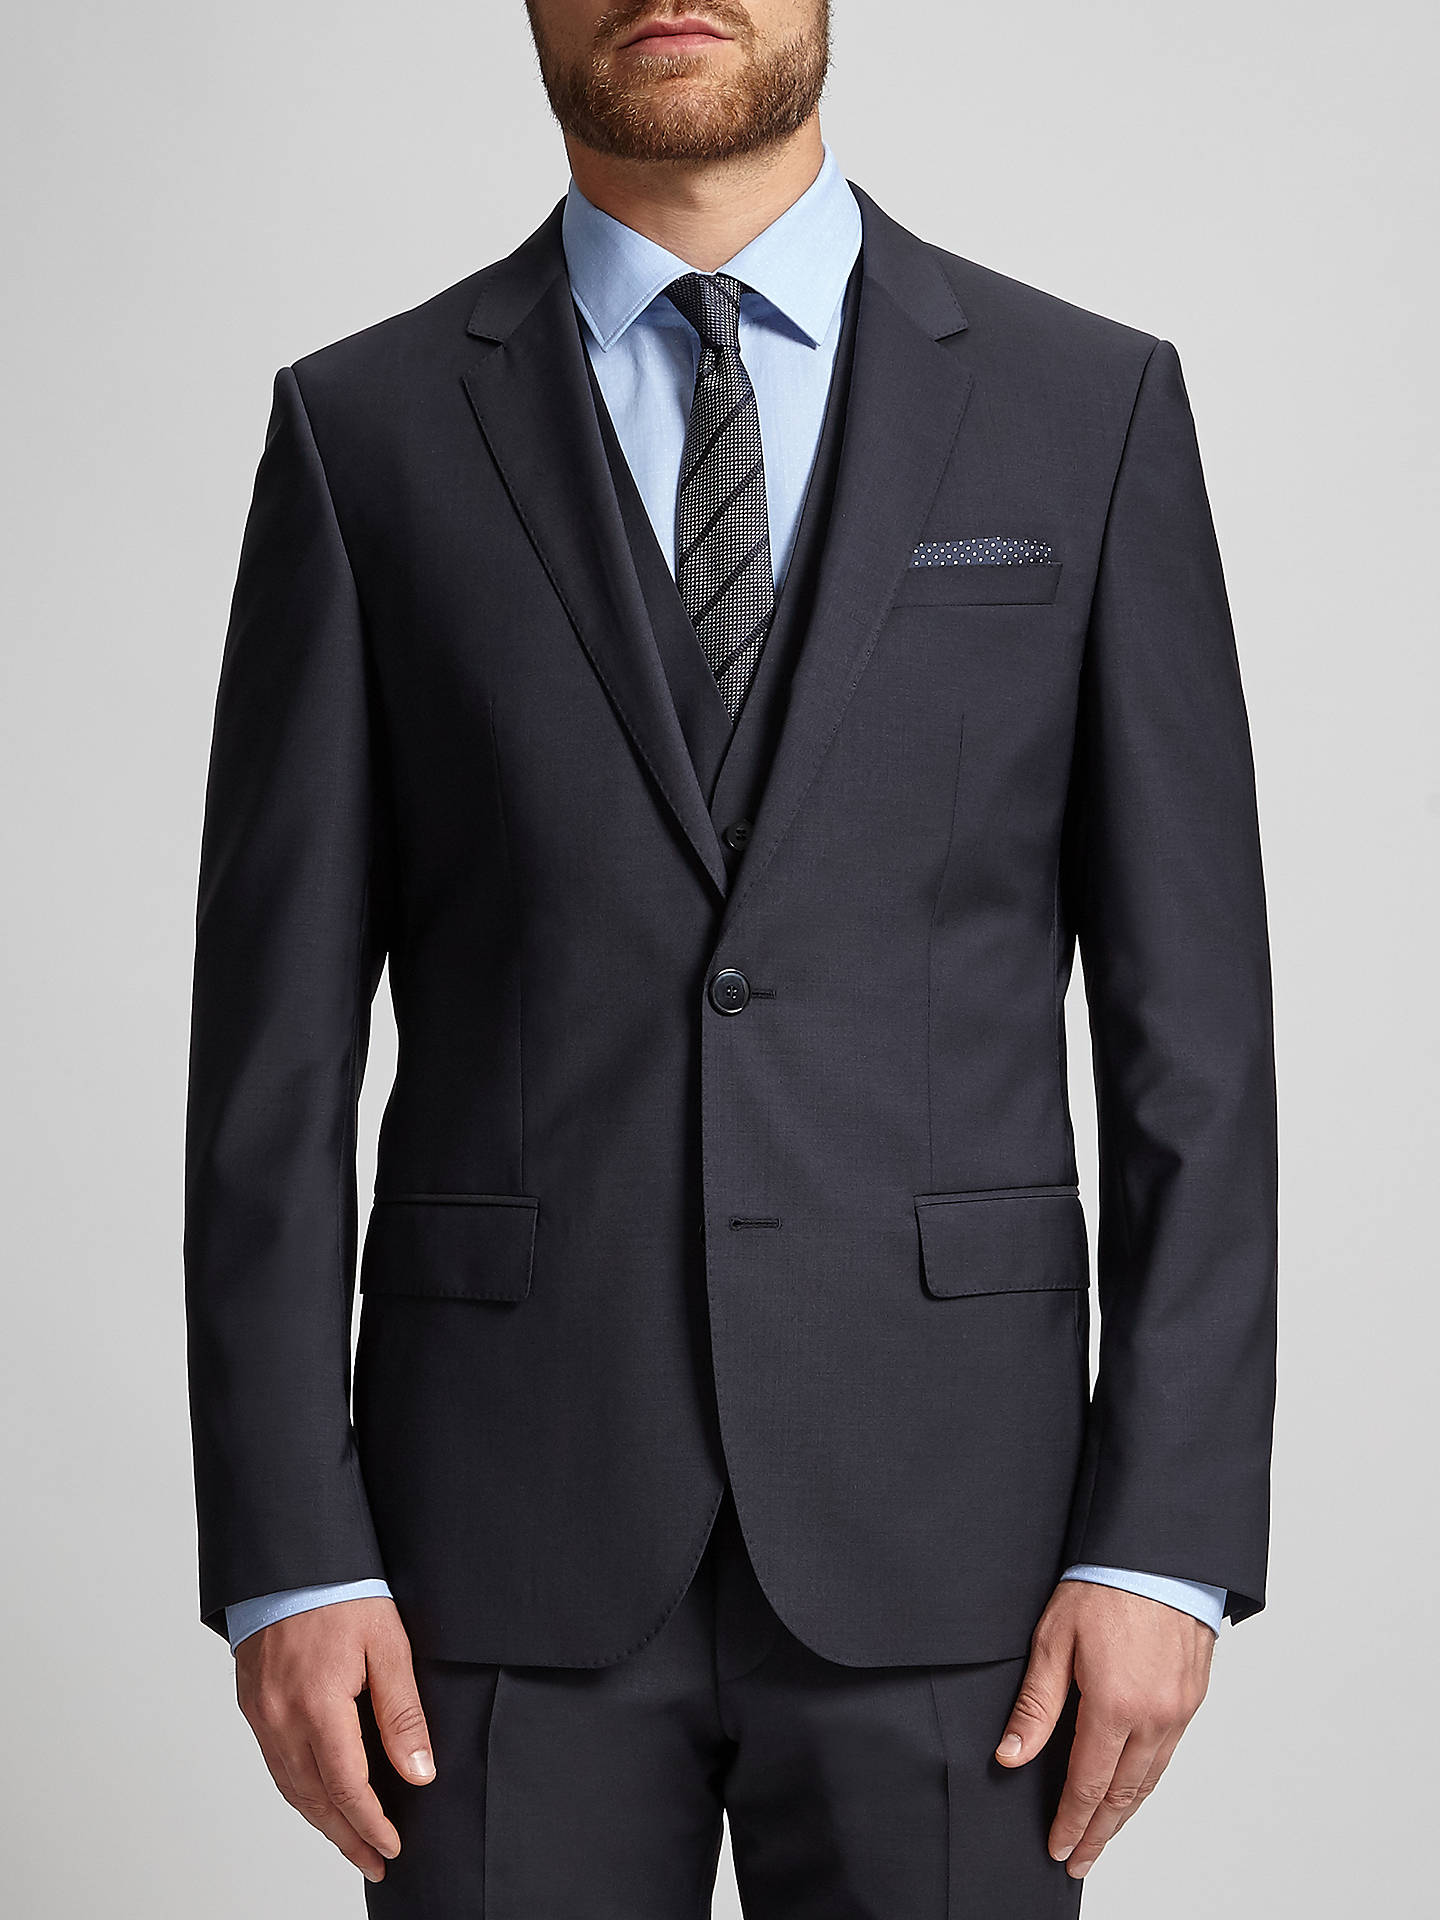 BuyHUGO by Hugo Boss Huge/Genius Virgin Wool Slim Fit Suit Jacket, Dark Blue, 44R Online at johnlewis.com